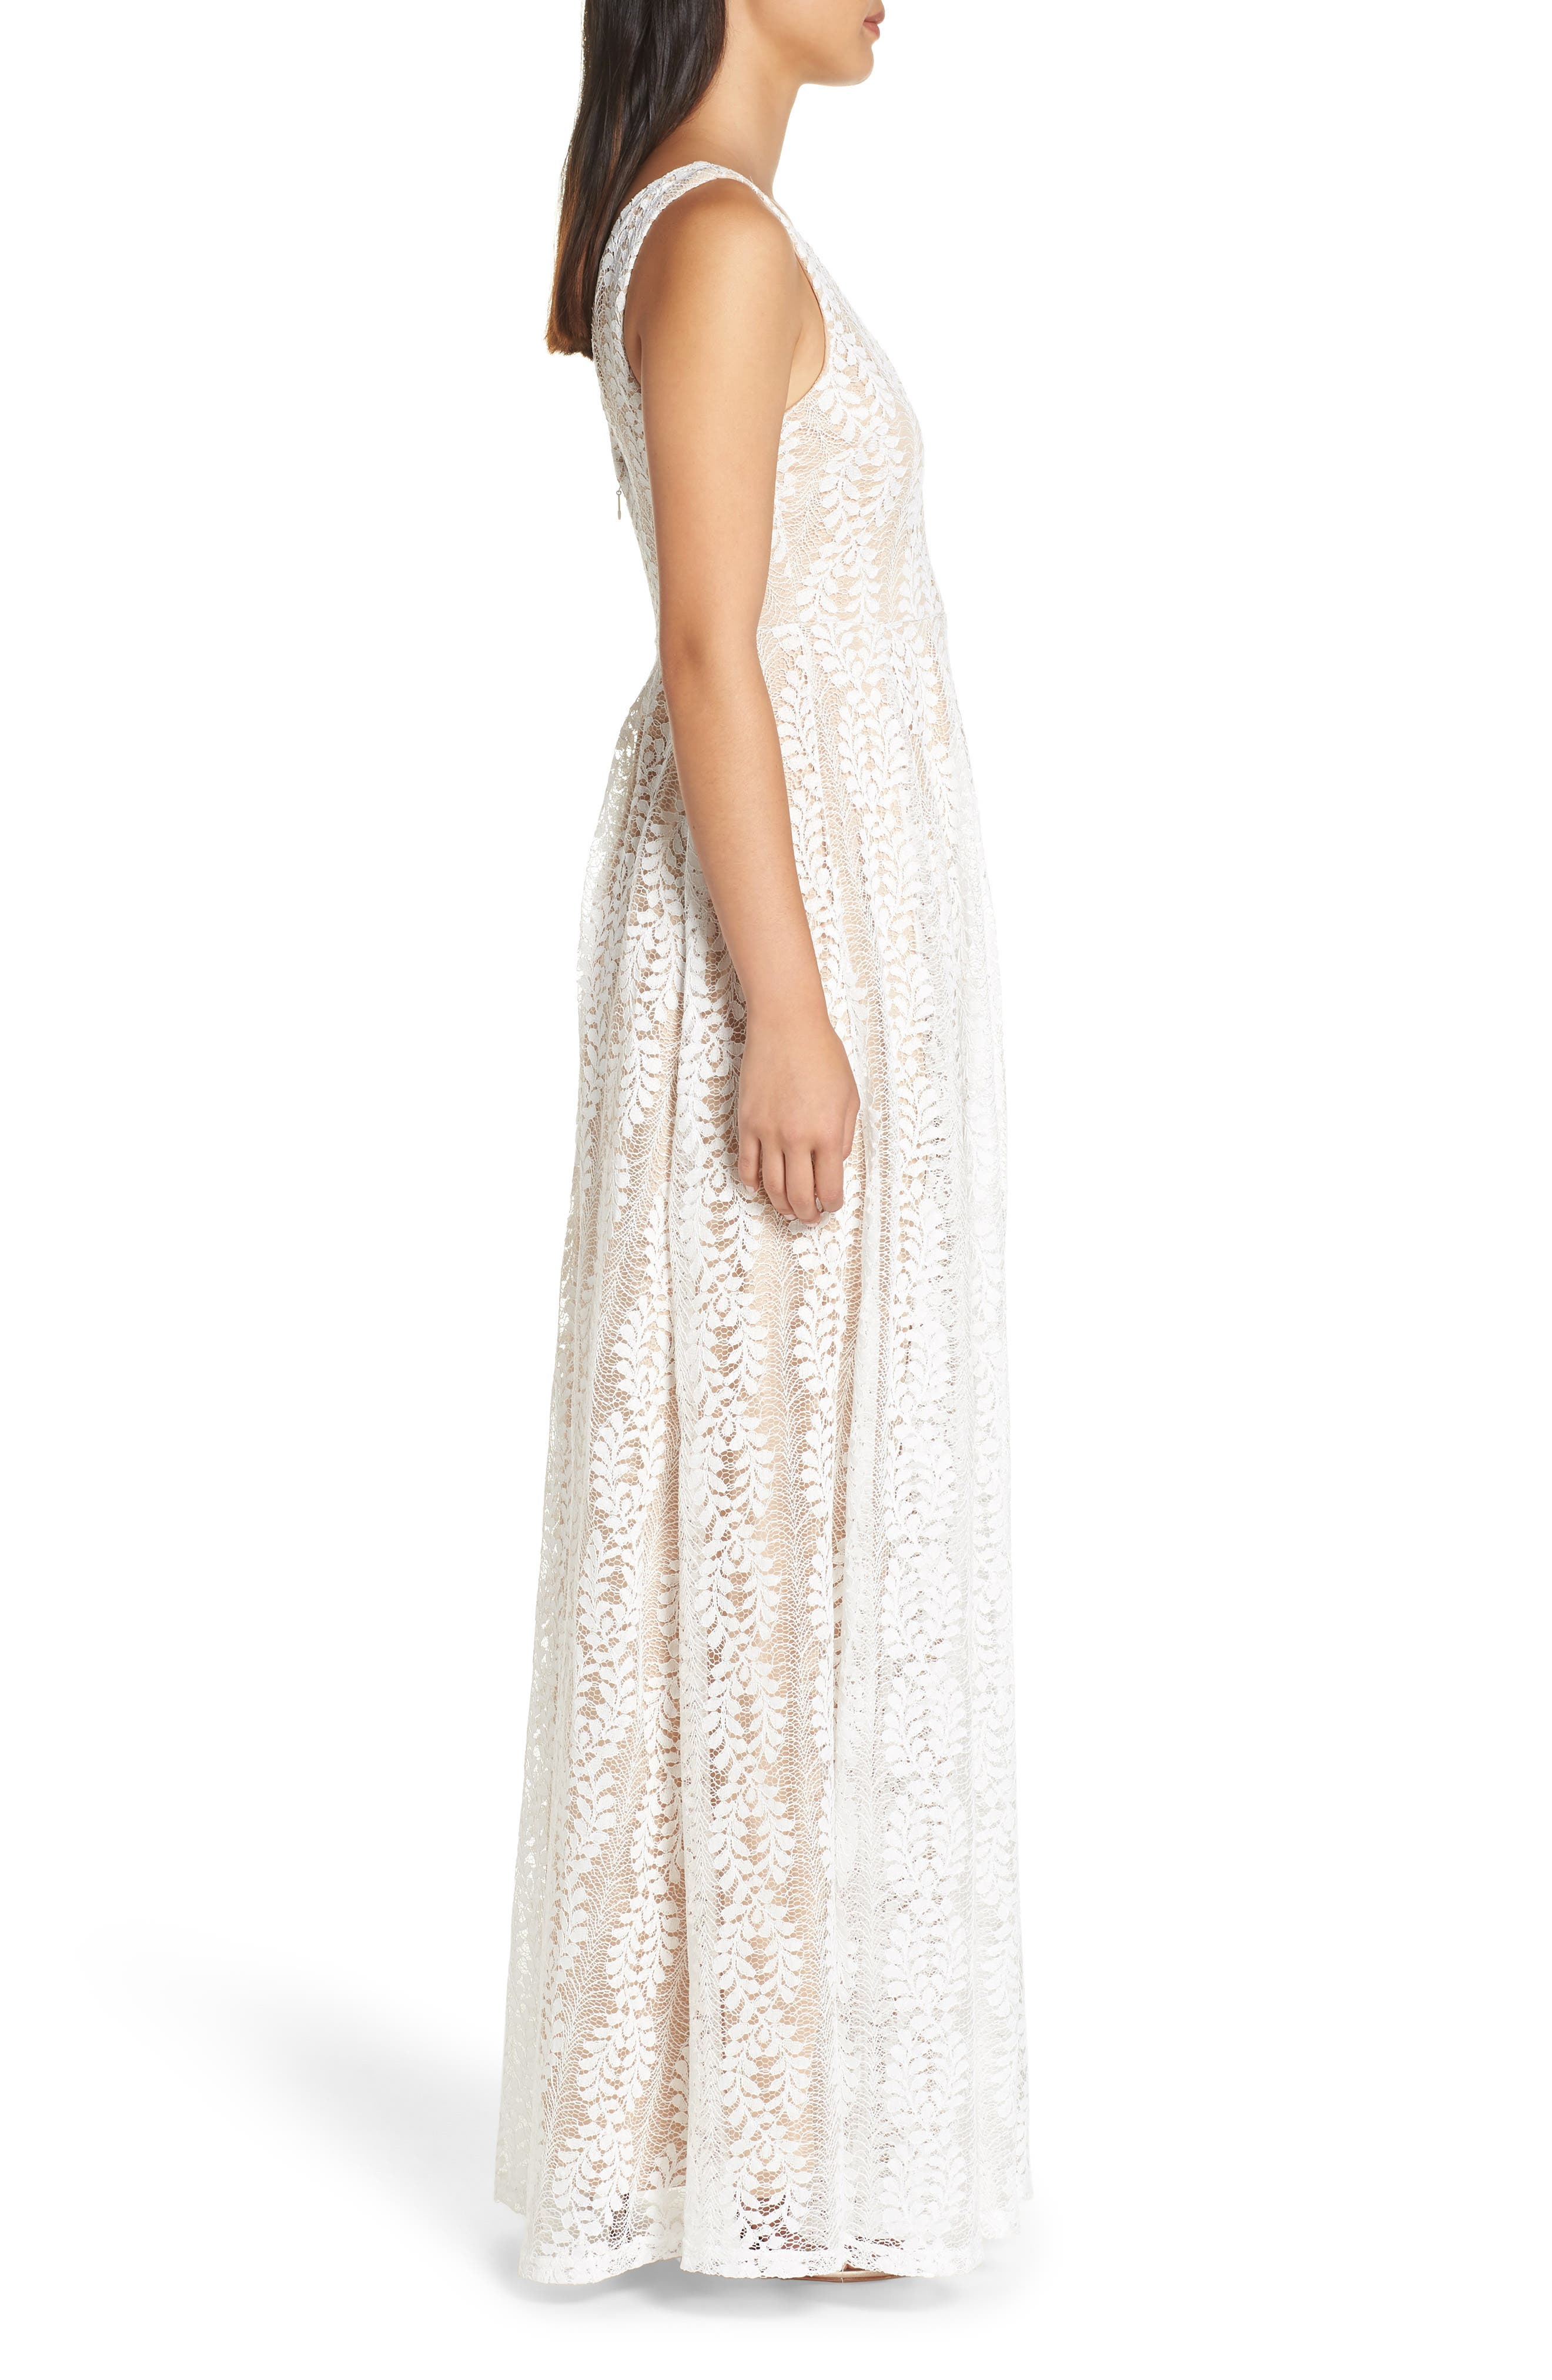 LULUS, Eliana Lace V-Neck Gown, Alternate thumbnail 4, color, WHITE/ NUDE